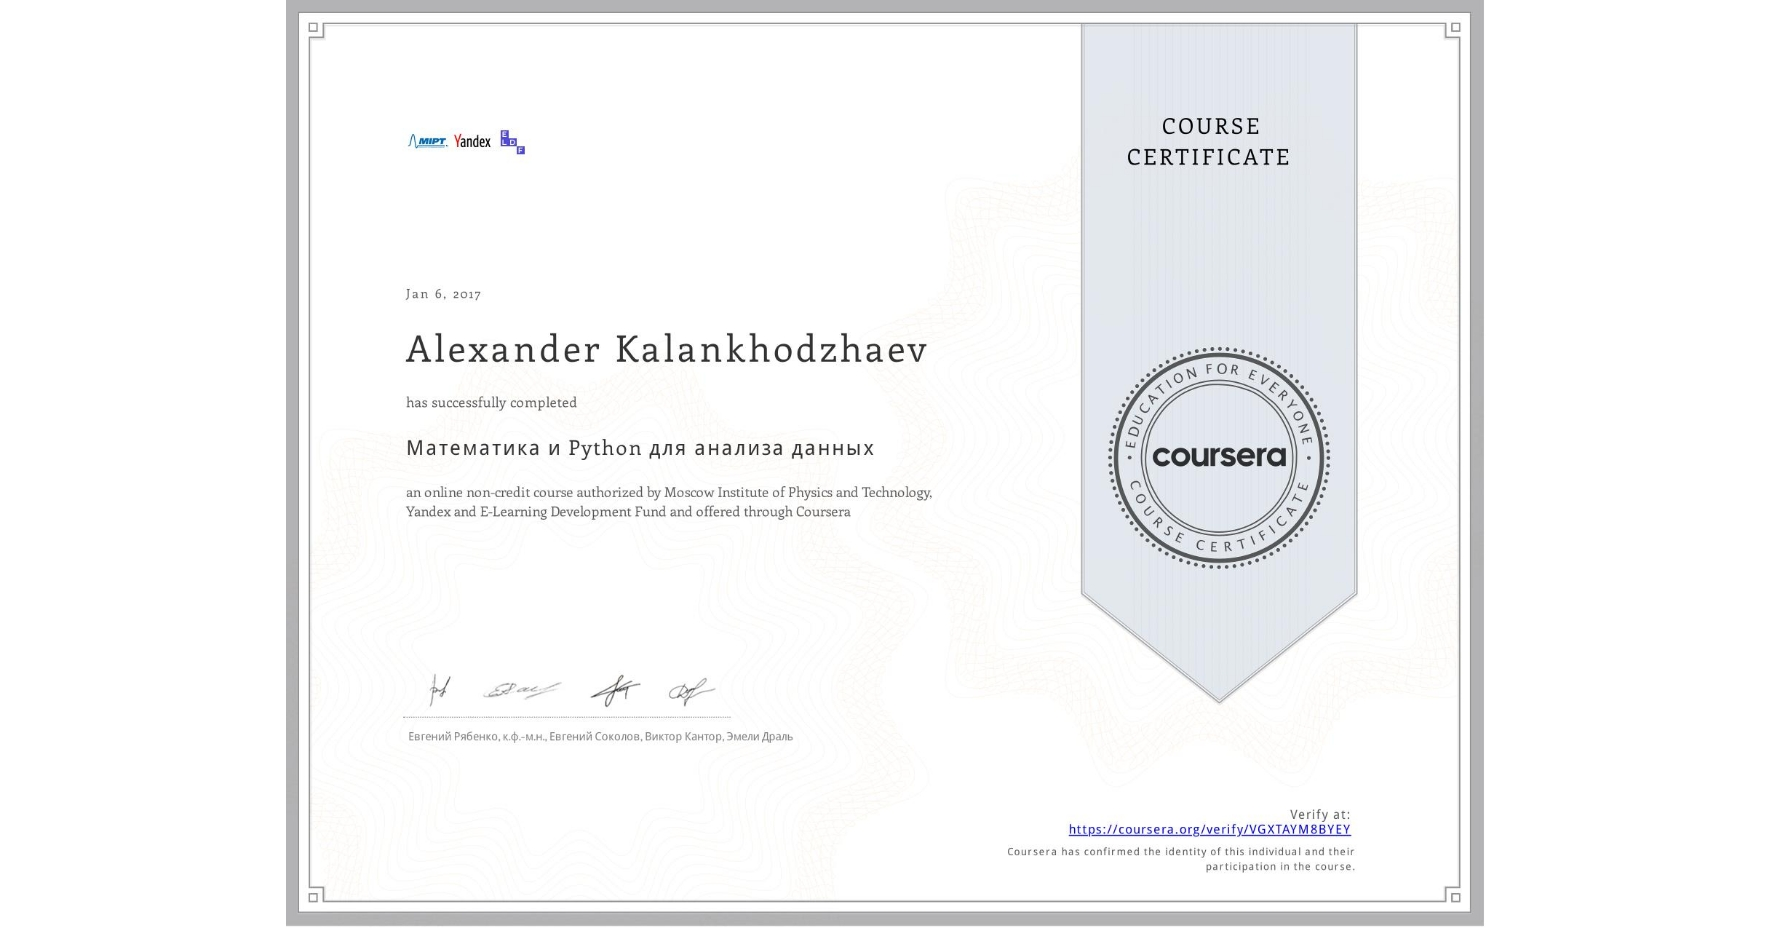 View certificate for Alexander Kalankhodzhaev, Математика и Python для анализа данных, an online non-credit course authorized by Moscow Institute of Physics and Technology, Yandex & E-Learning Development Fund and offered through Coursera